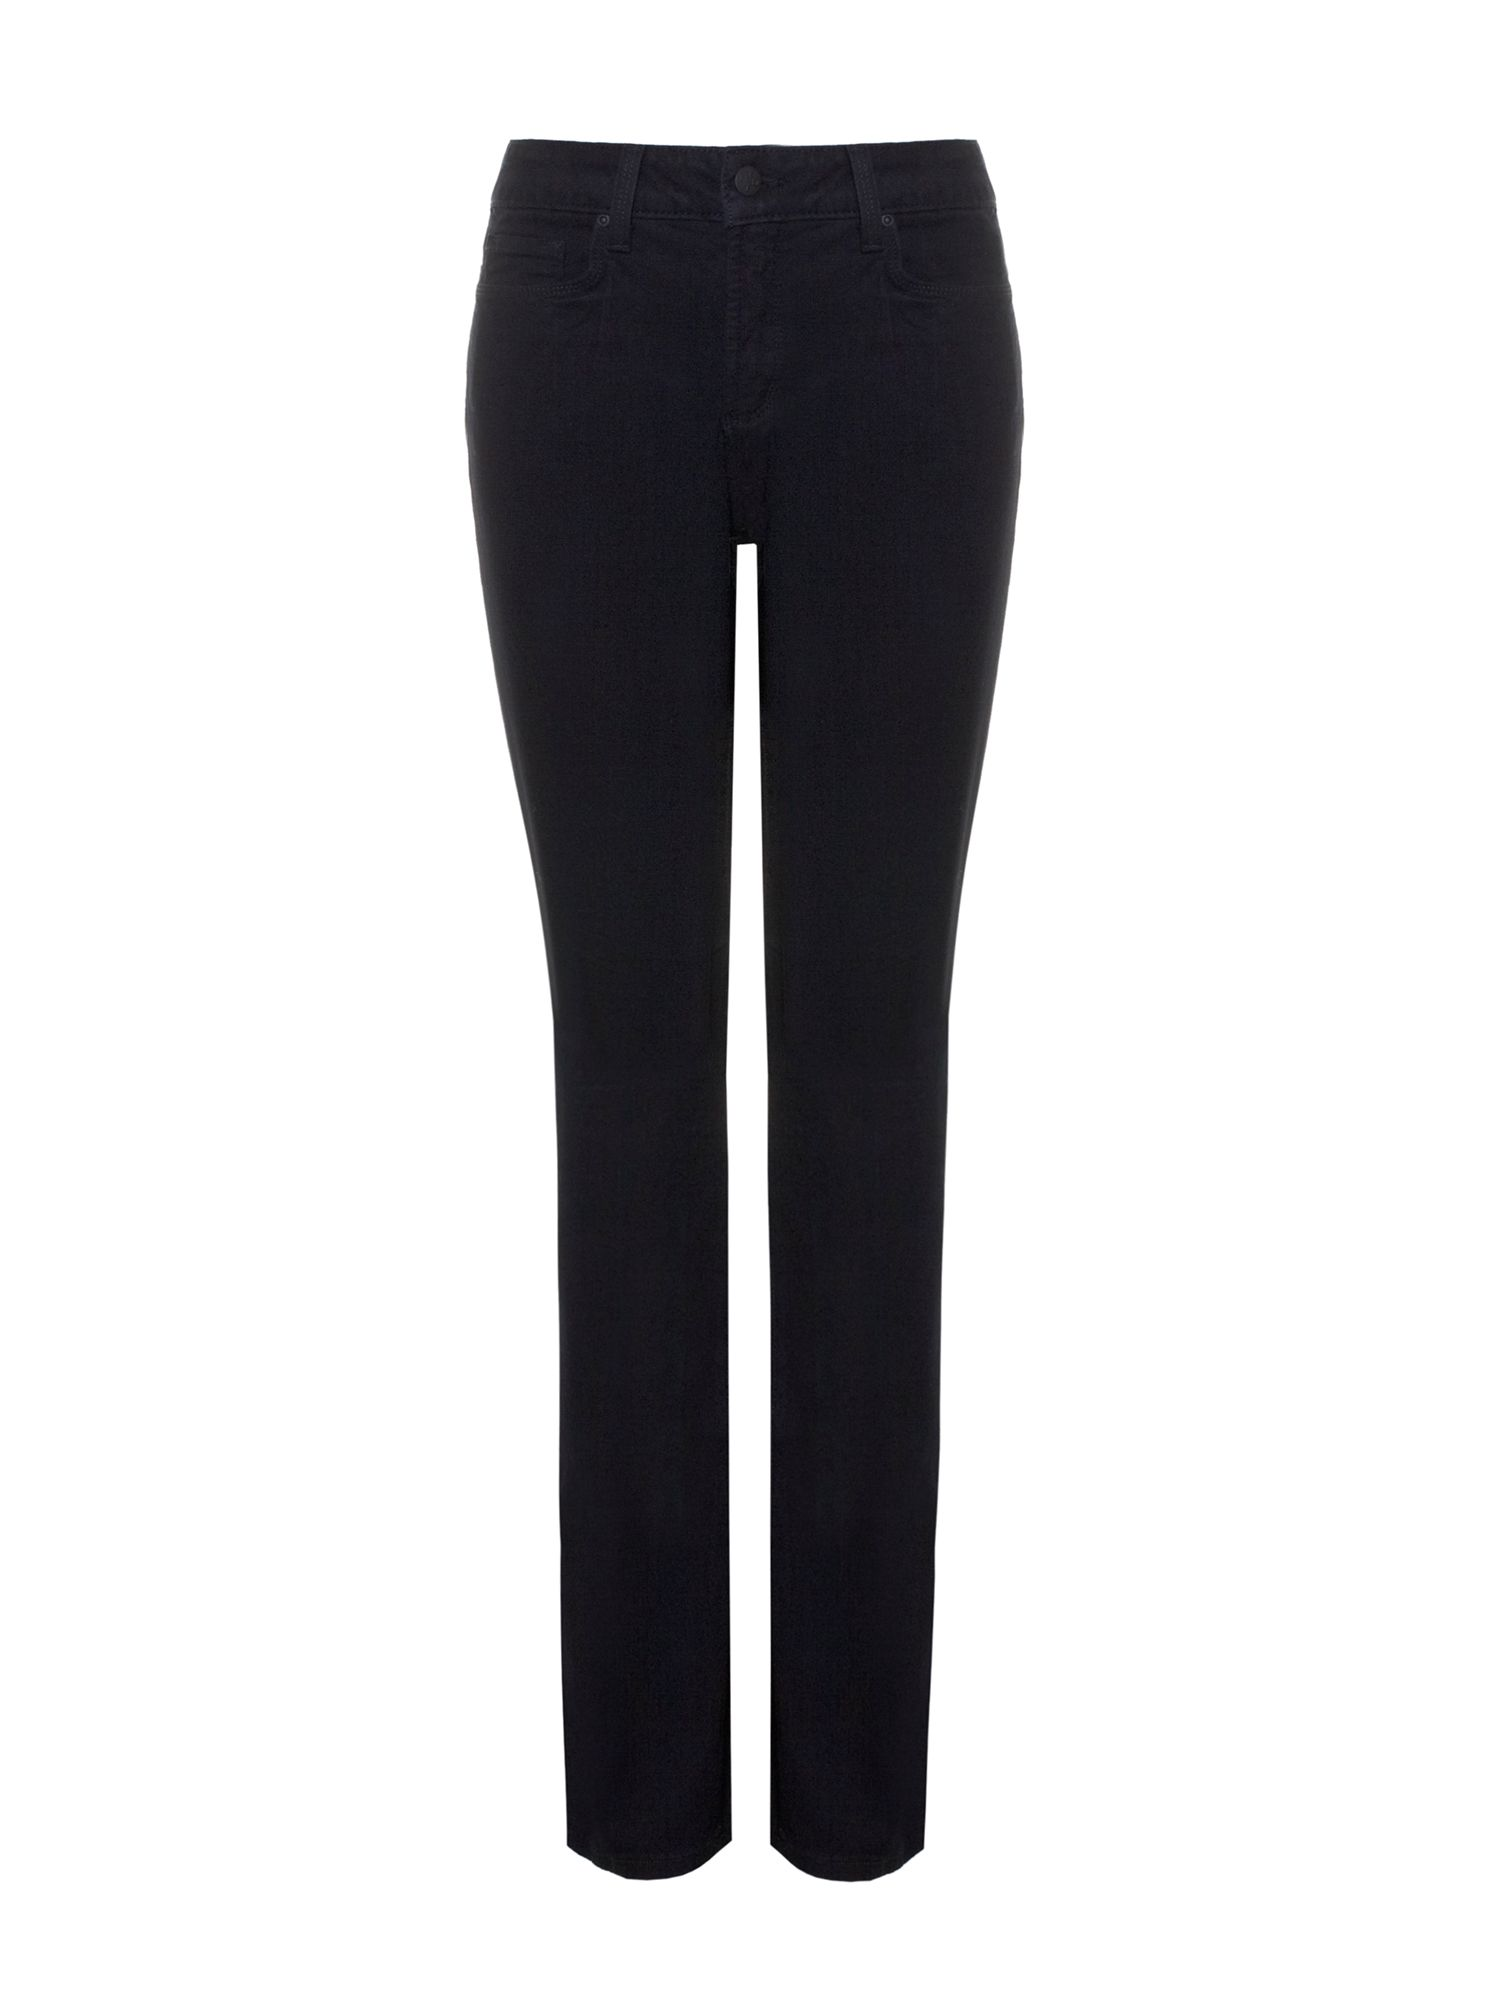 NYDJ Straight In Black Coloured Denim Petite Black